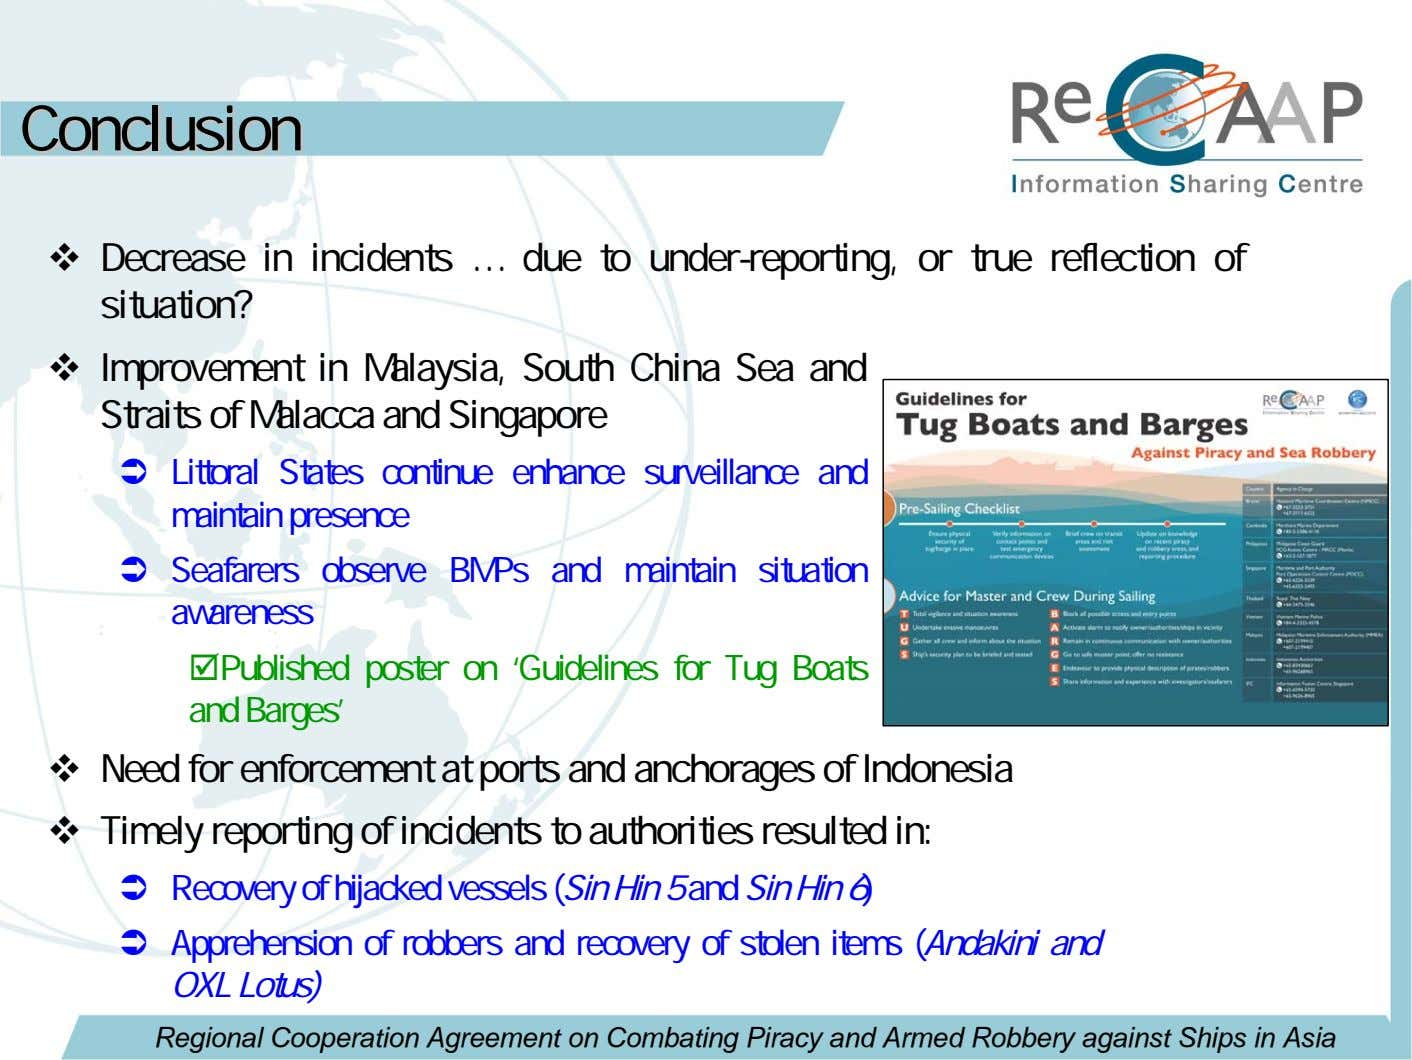 ConclusionConclusion Decrease in incidents … due to under-reporting, or true reflection of situation? Improvement